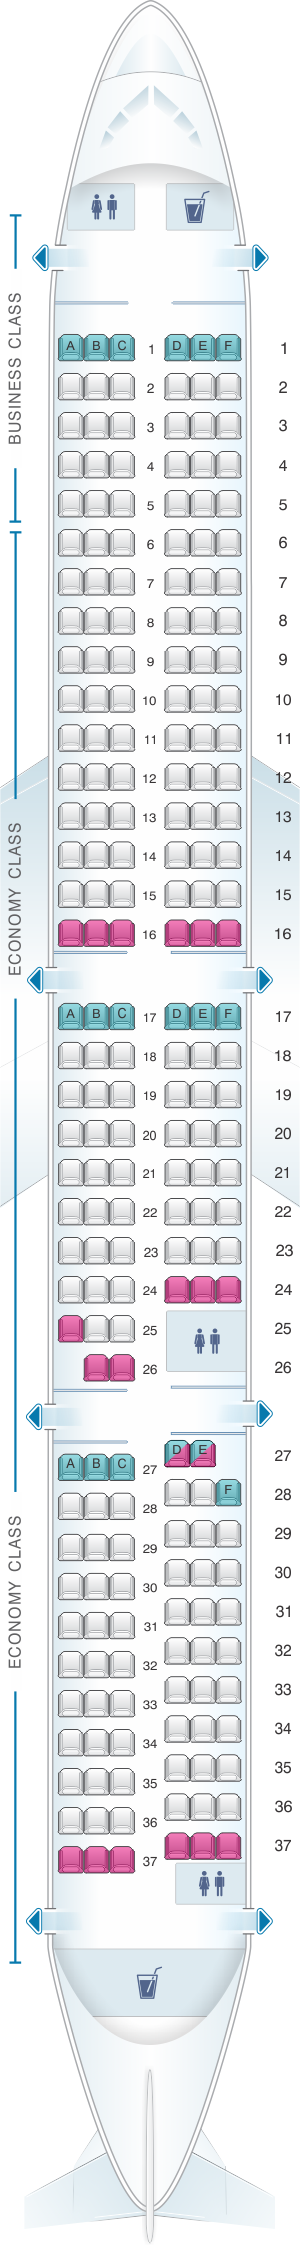 Seat Map Air New Zealand Airbus A321 Neo | SeatMaestro